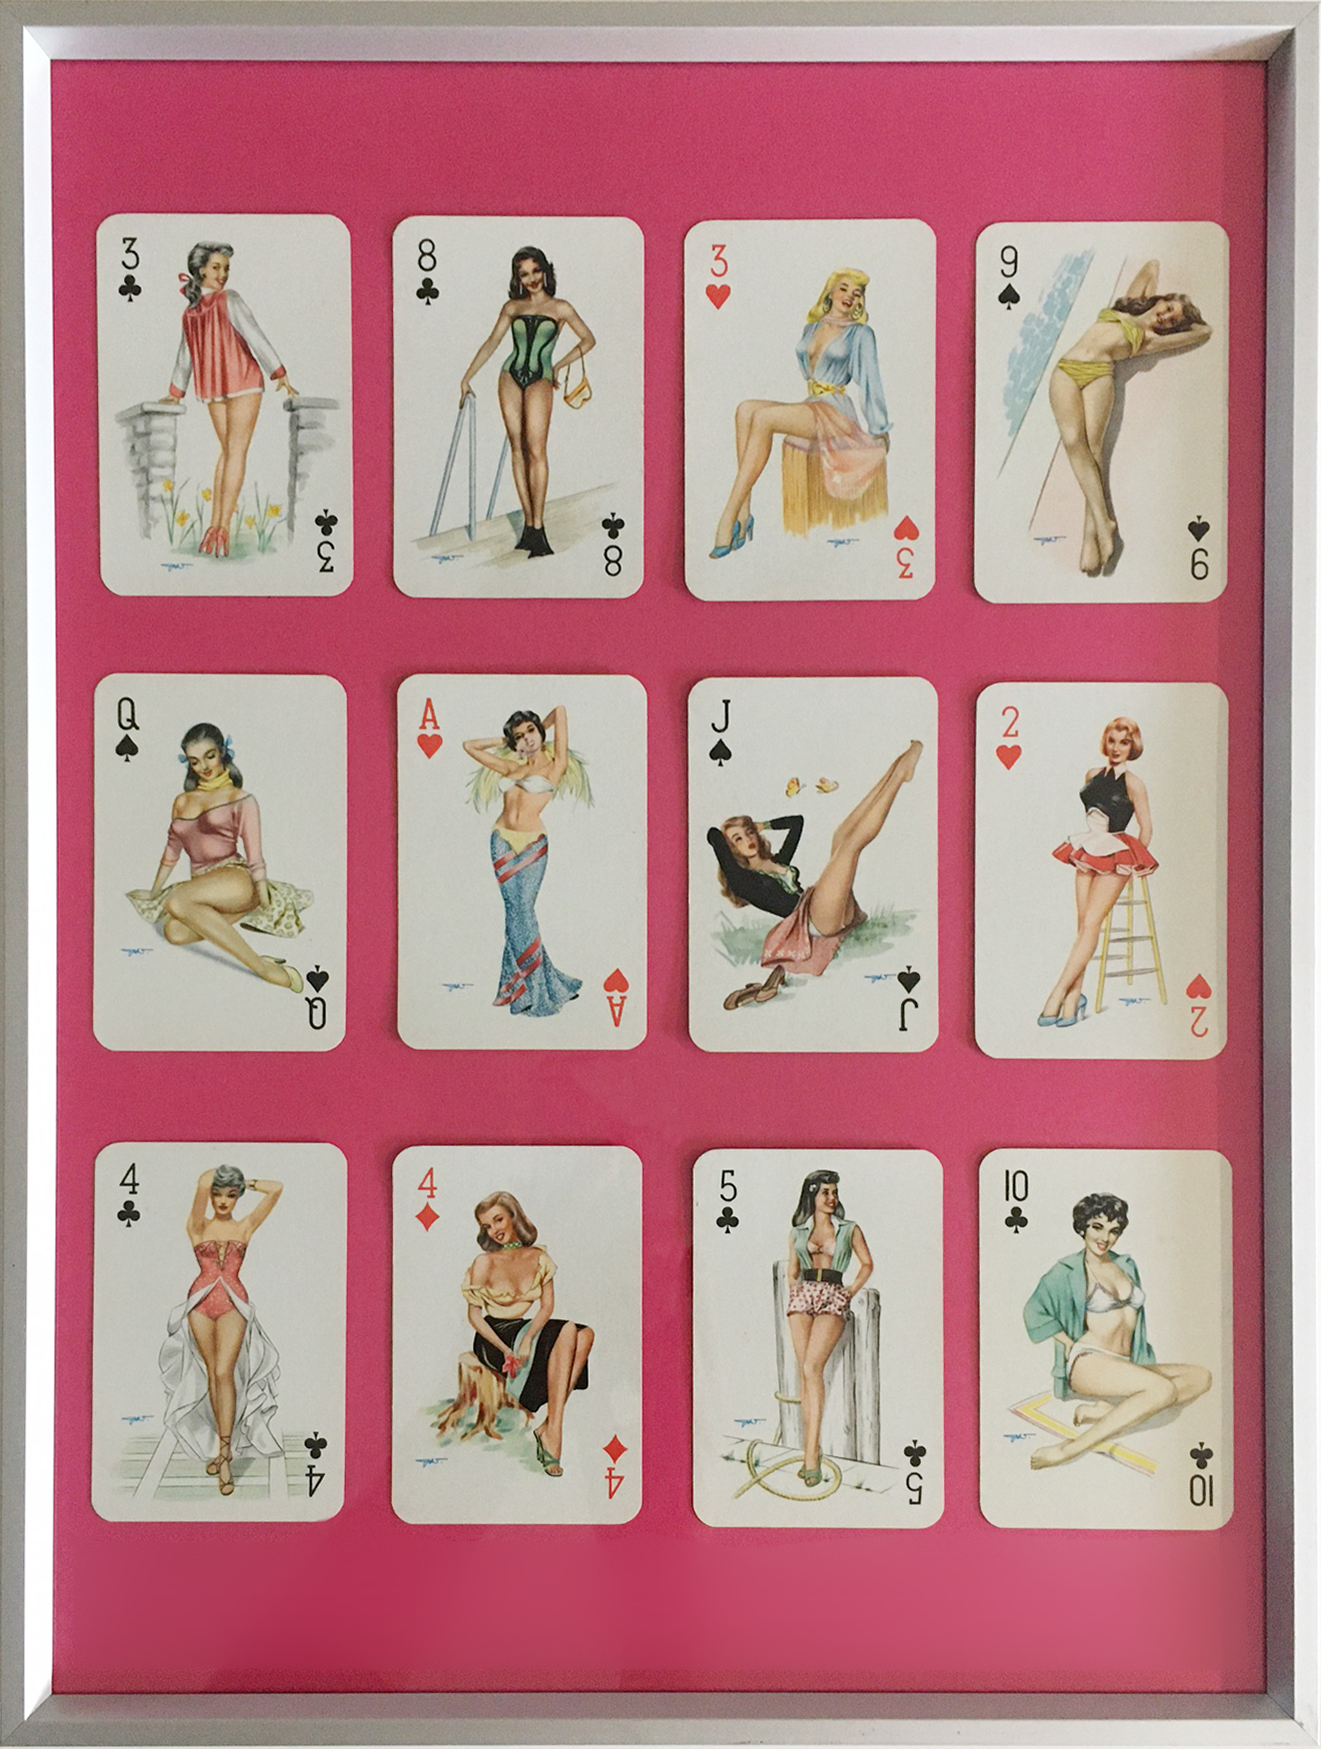 Heinz Villager pin-up girls, 1950s playing cards